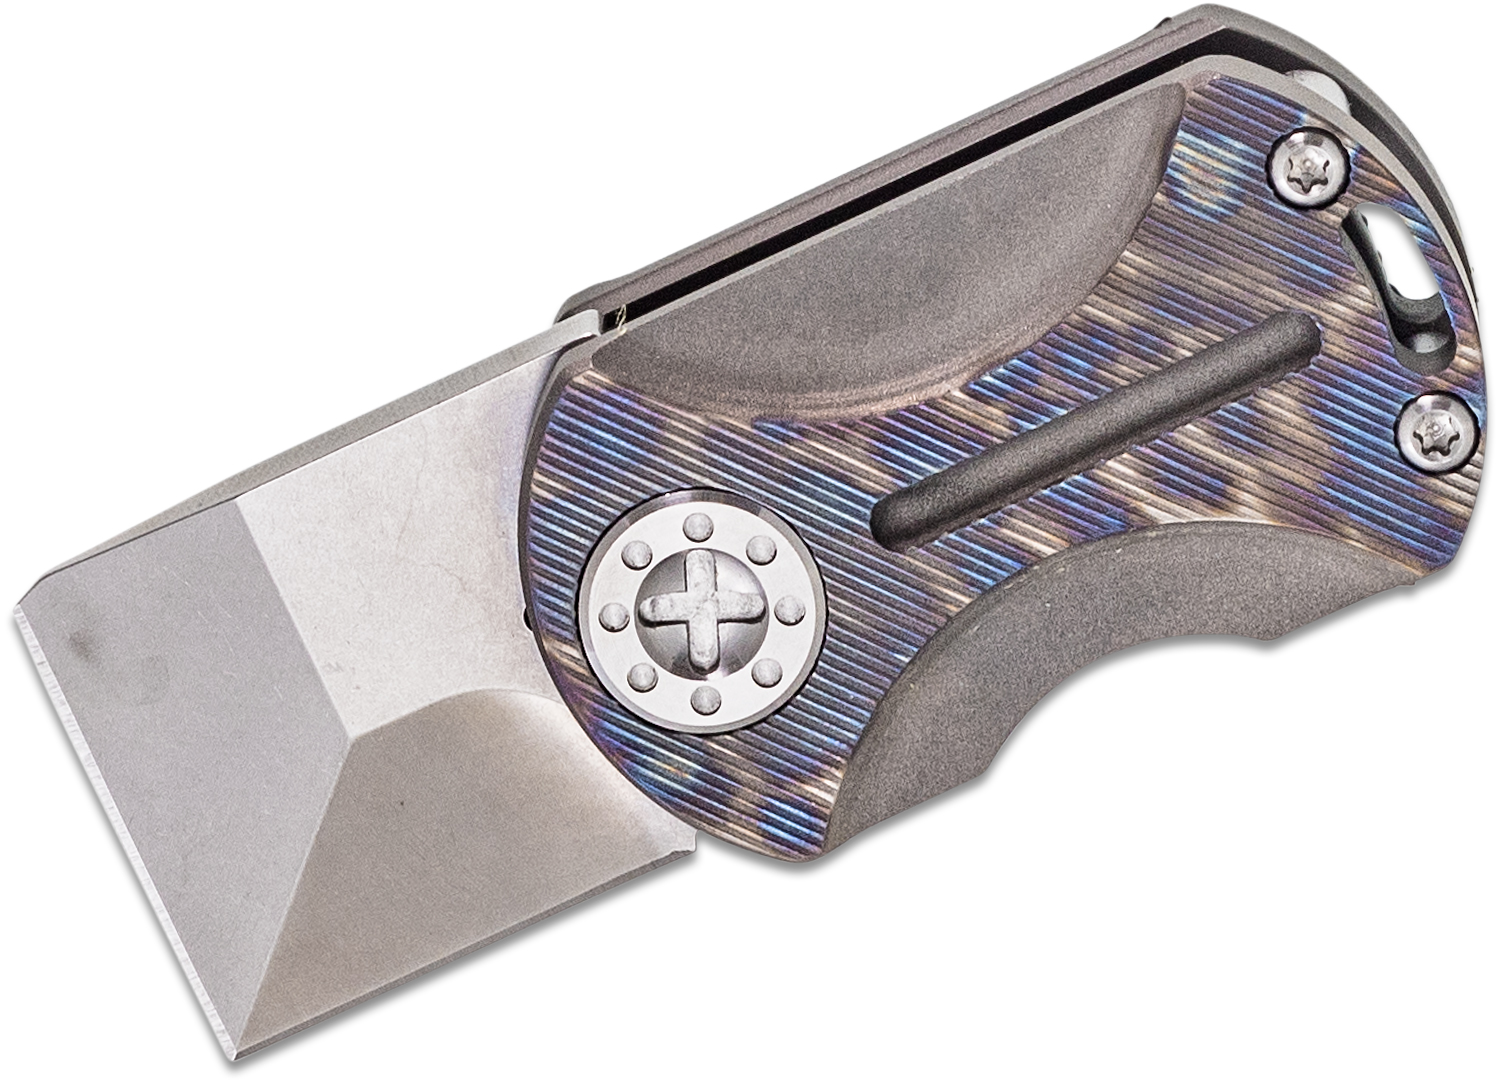 Curtiss Knives ODT Original Dog Tag Flipper Knife 1 inch Stonewashed CTS-XHP Square Tanto Blade, Torched TACMOD Titanium Handles